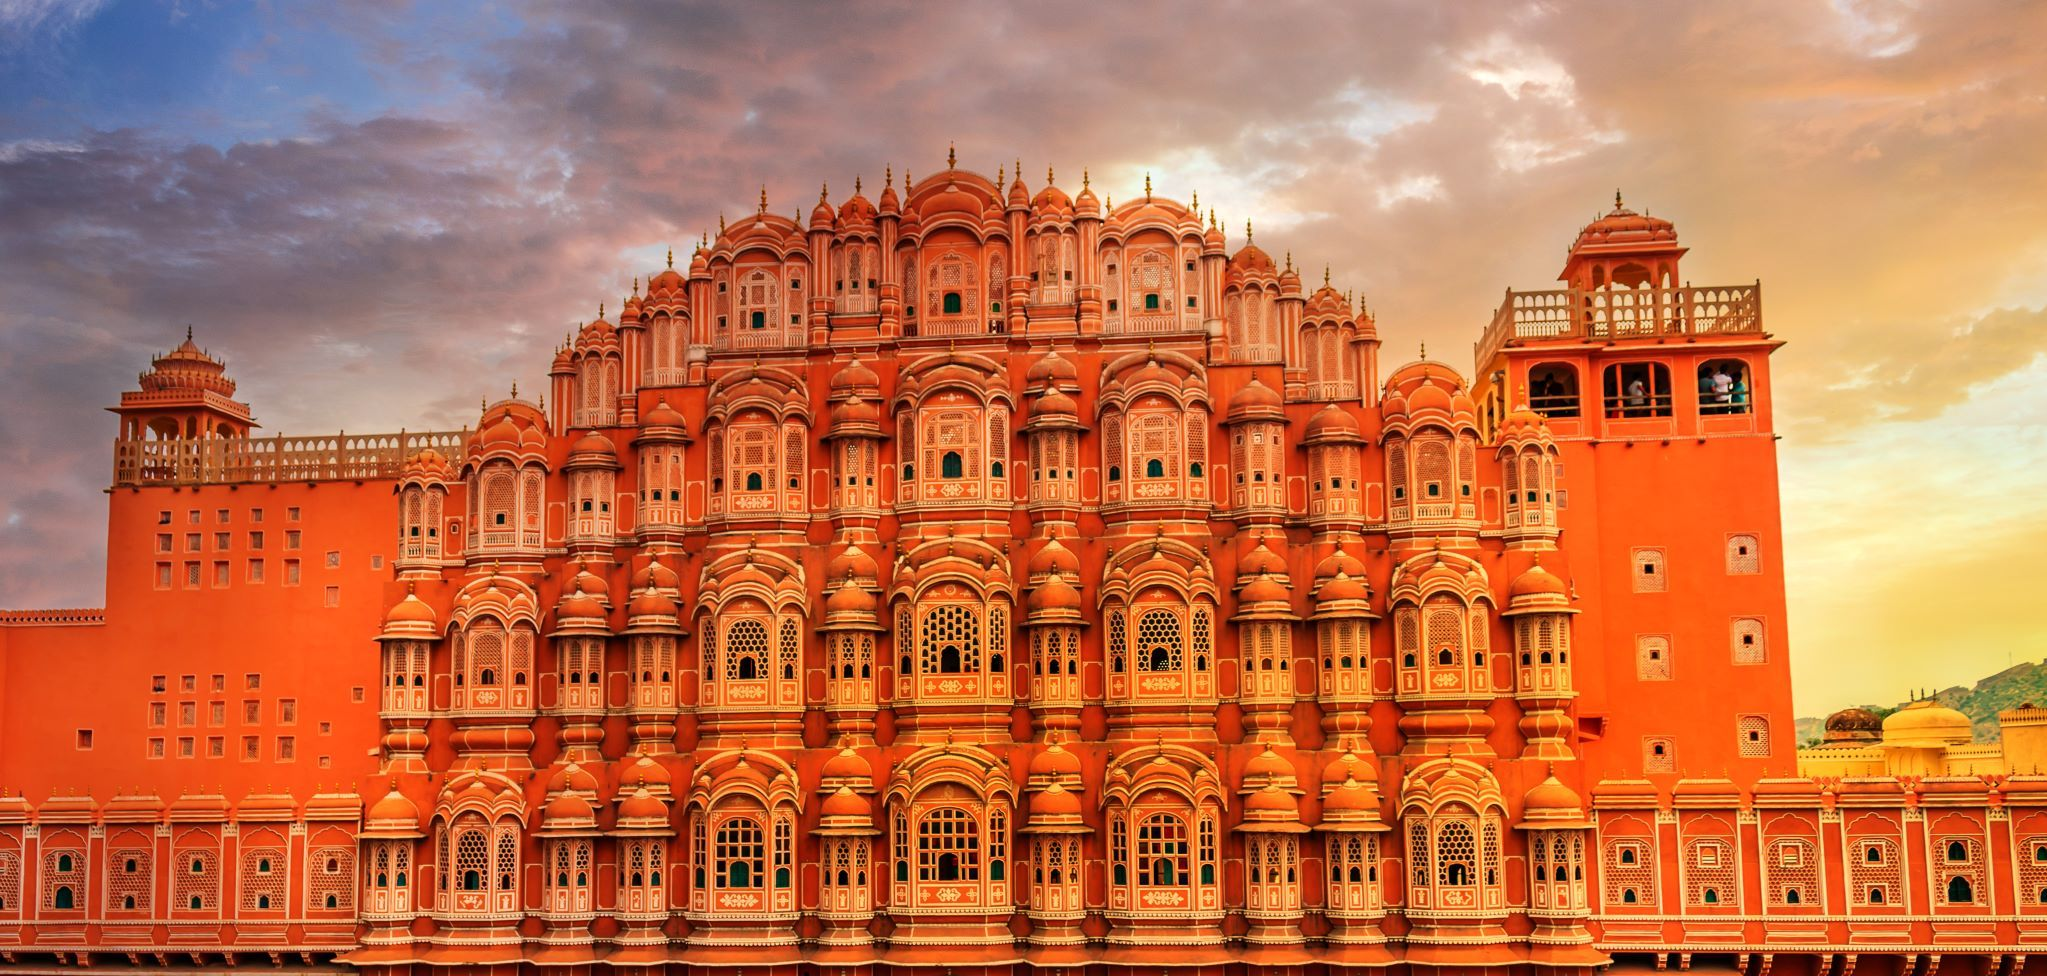 Palace of the wind - Jaipur c Shutterstock-1147978499 compress